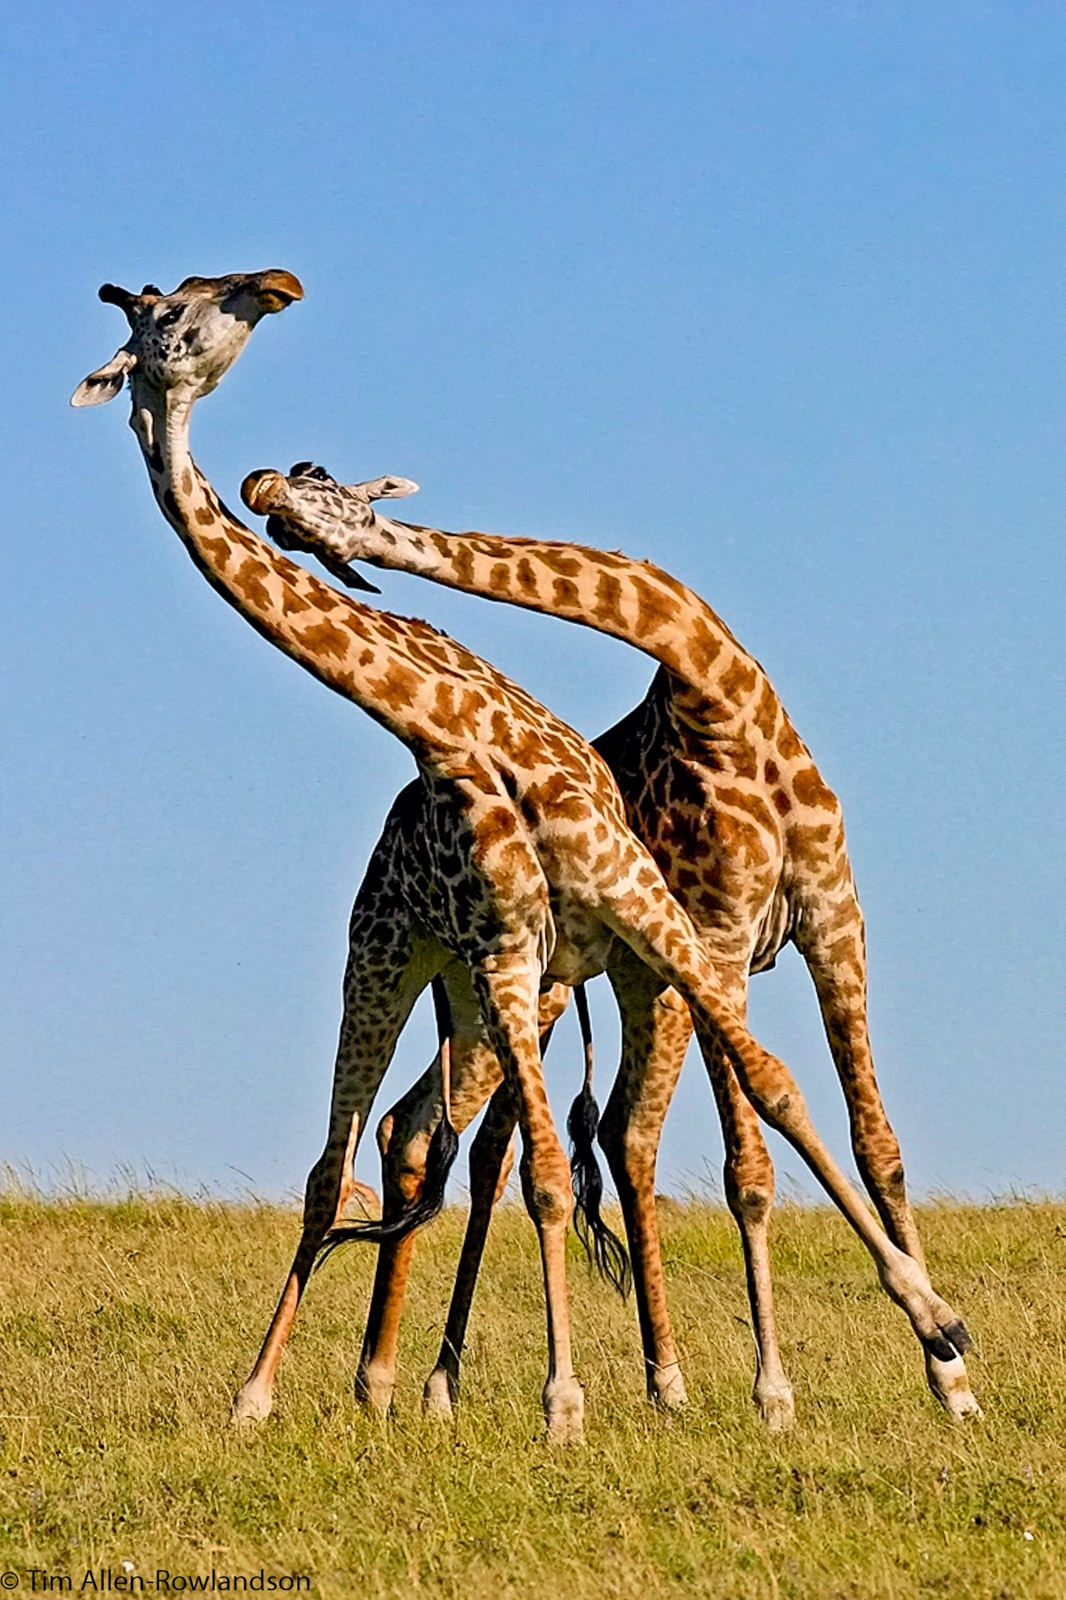 Male giraffes necking (sparring), Masai Mara